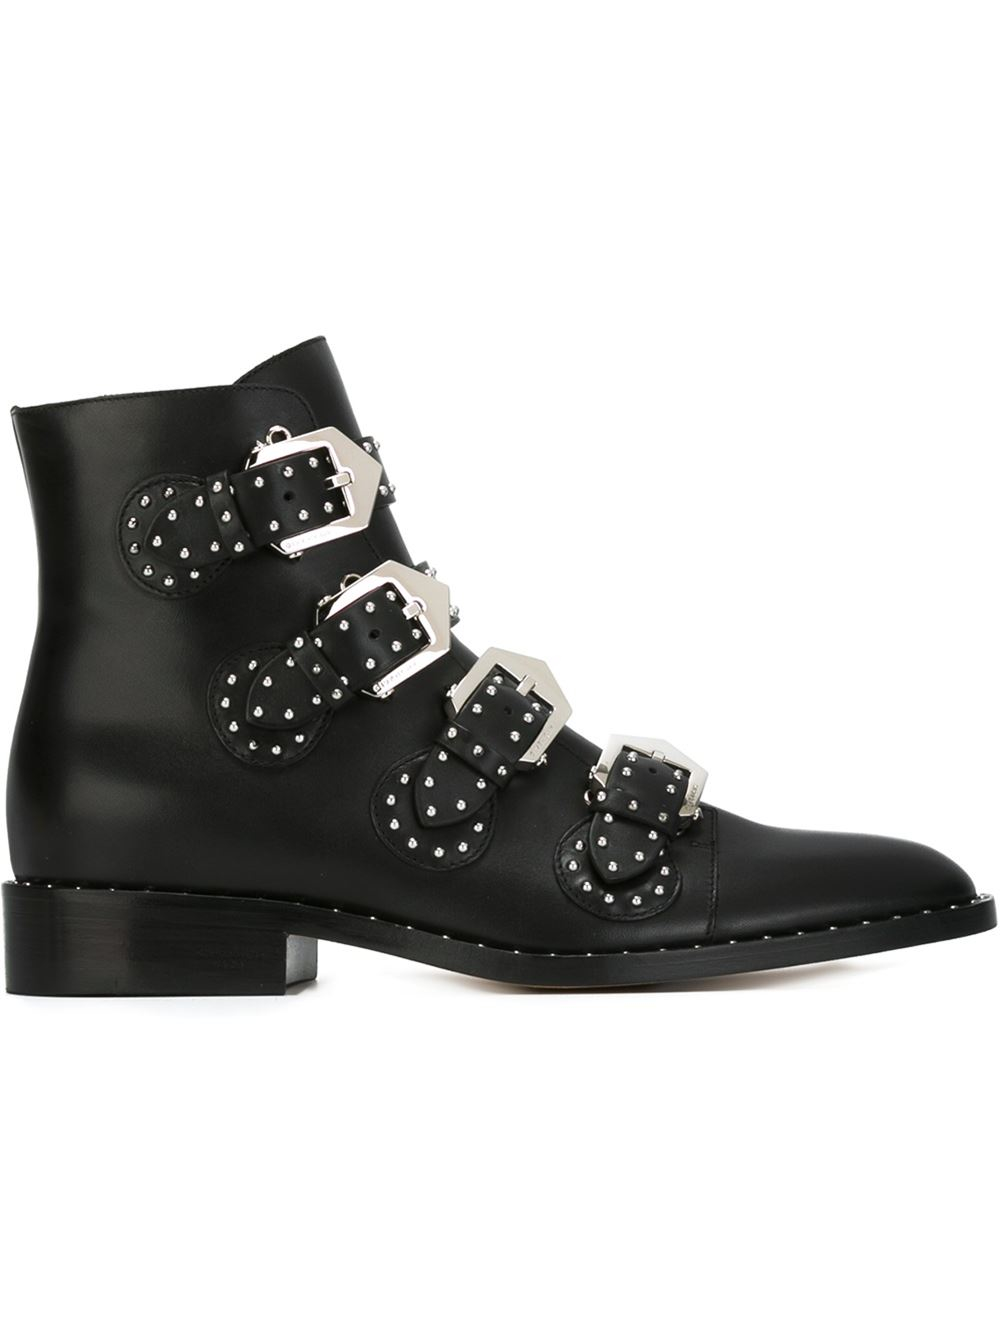 givenchy buckled ankle boots in black lyst